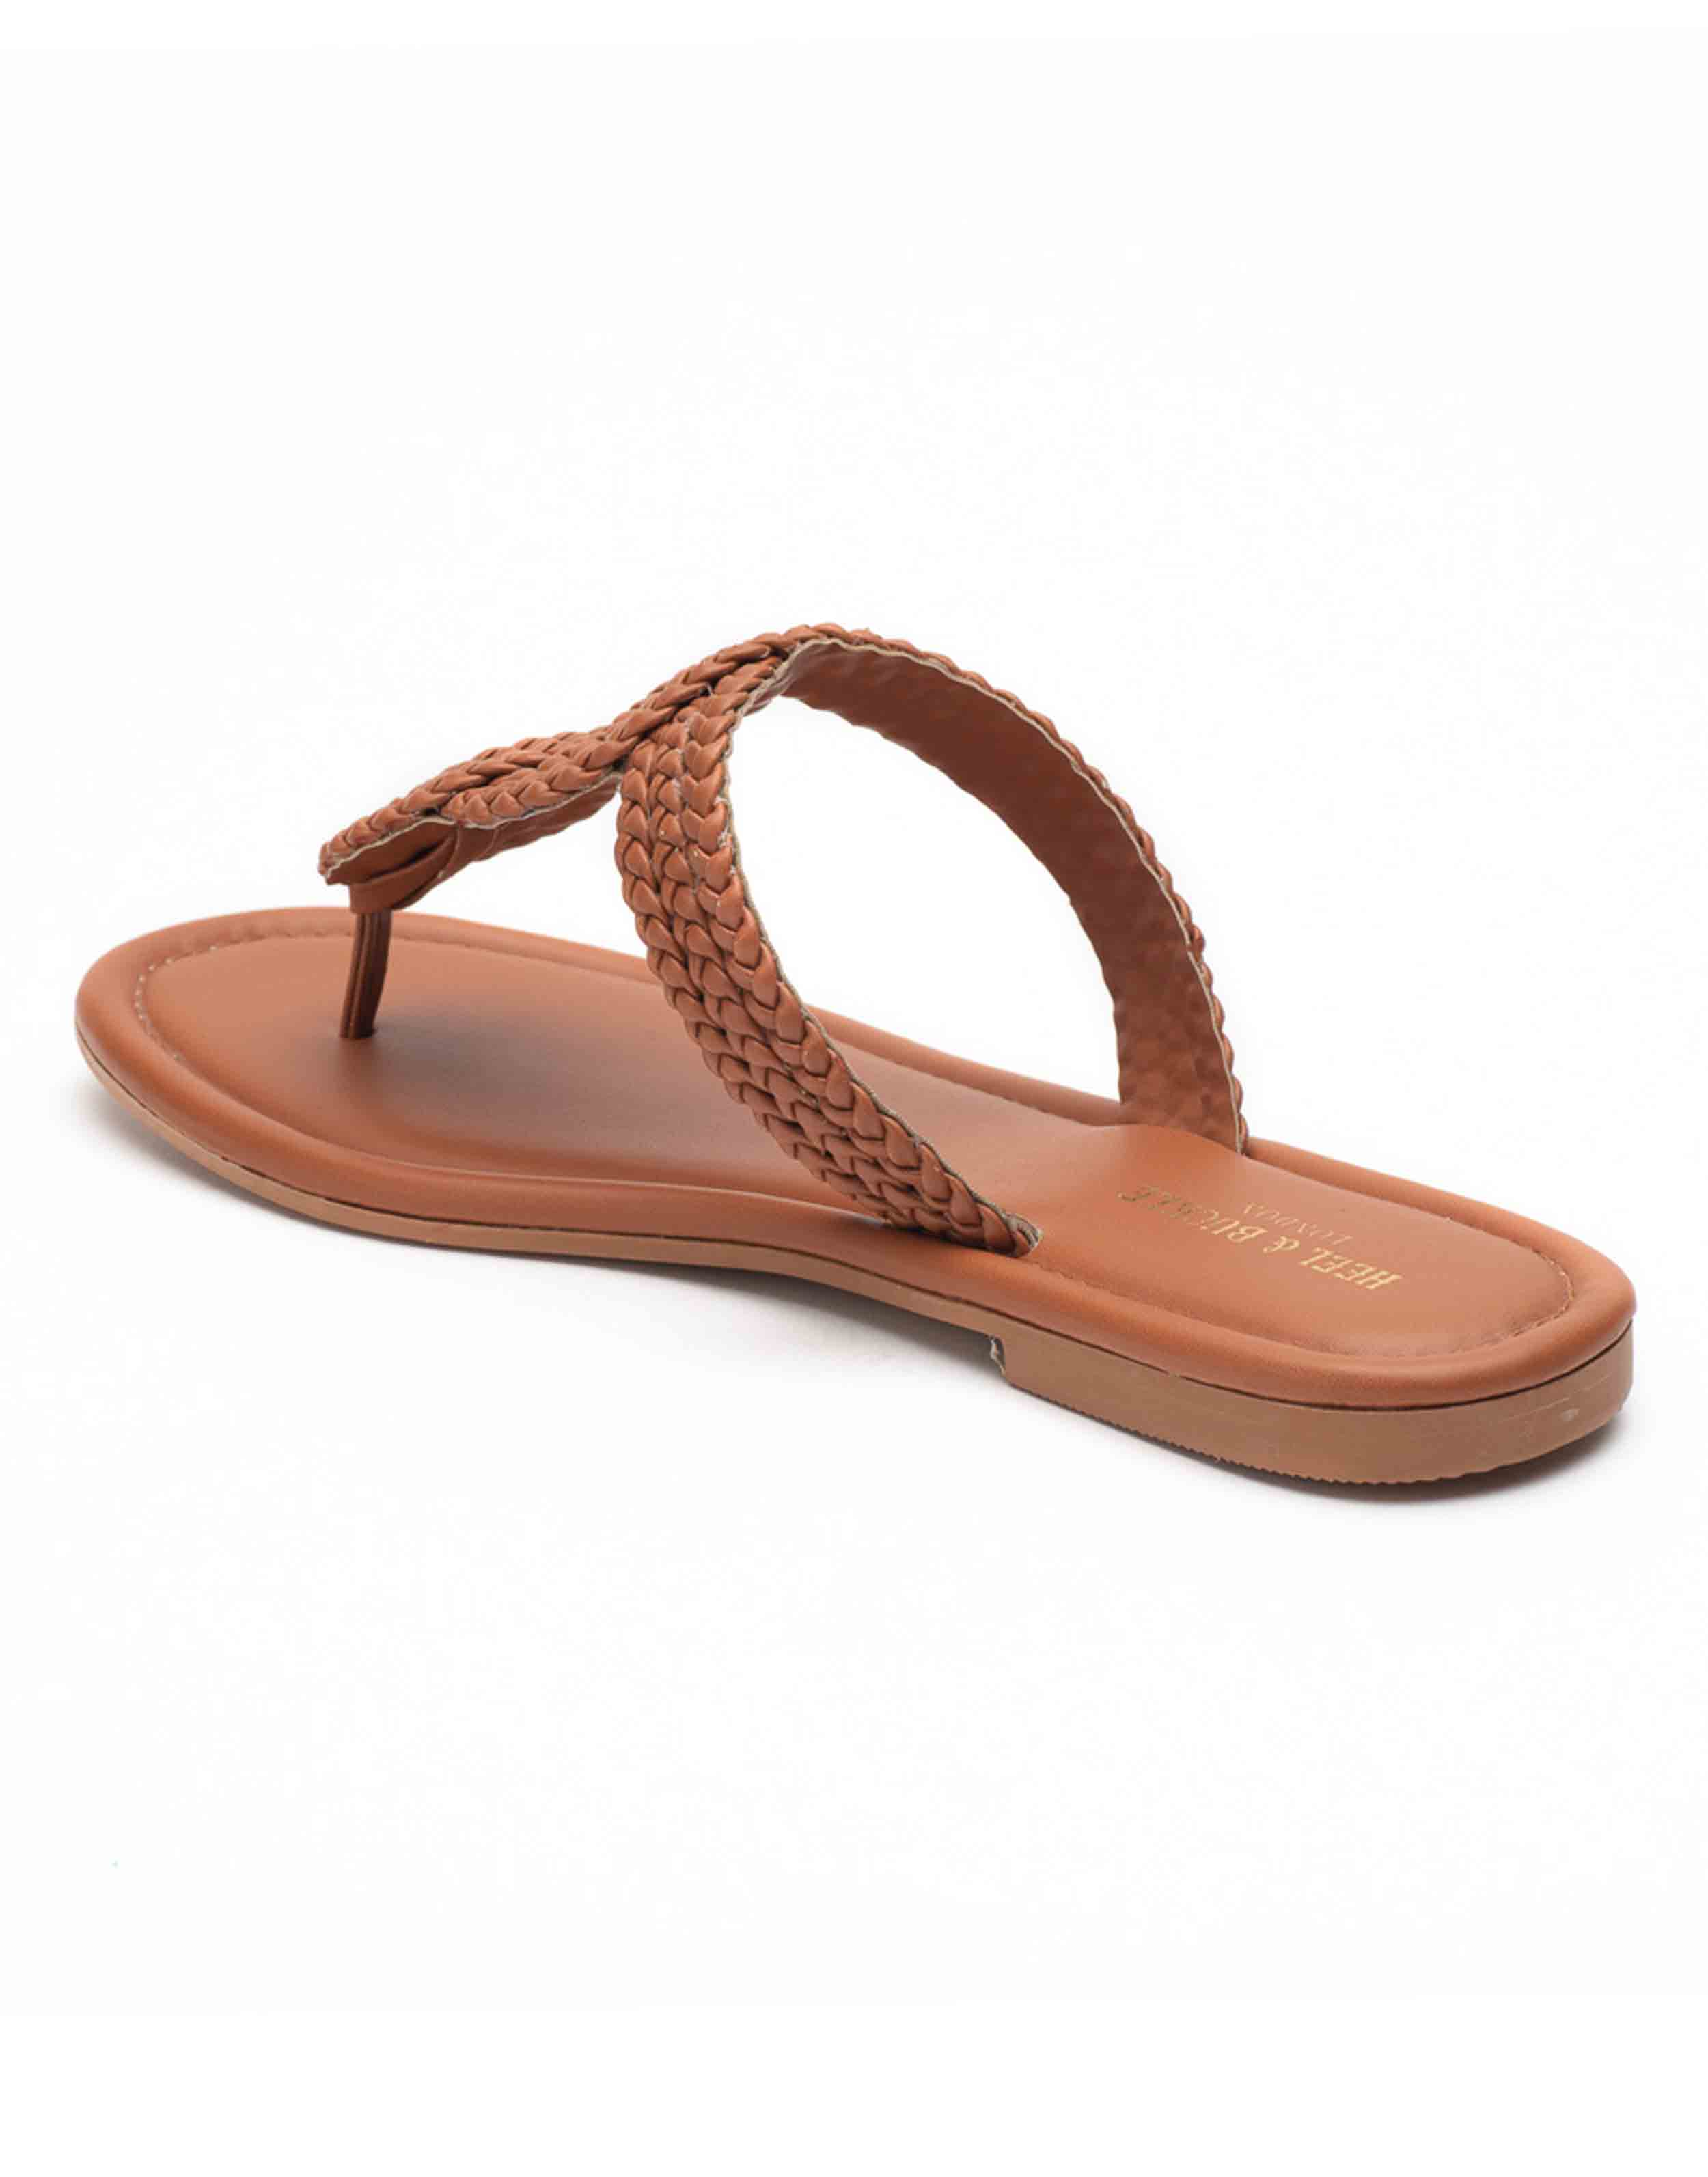 Heel _ Buckle London-Shoes-HBDARW094-Tan Knotted Flat Sandals-3